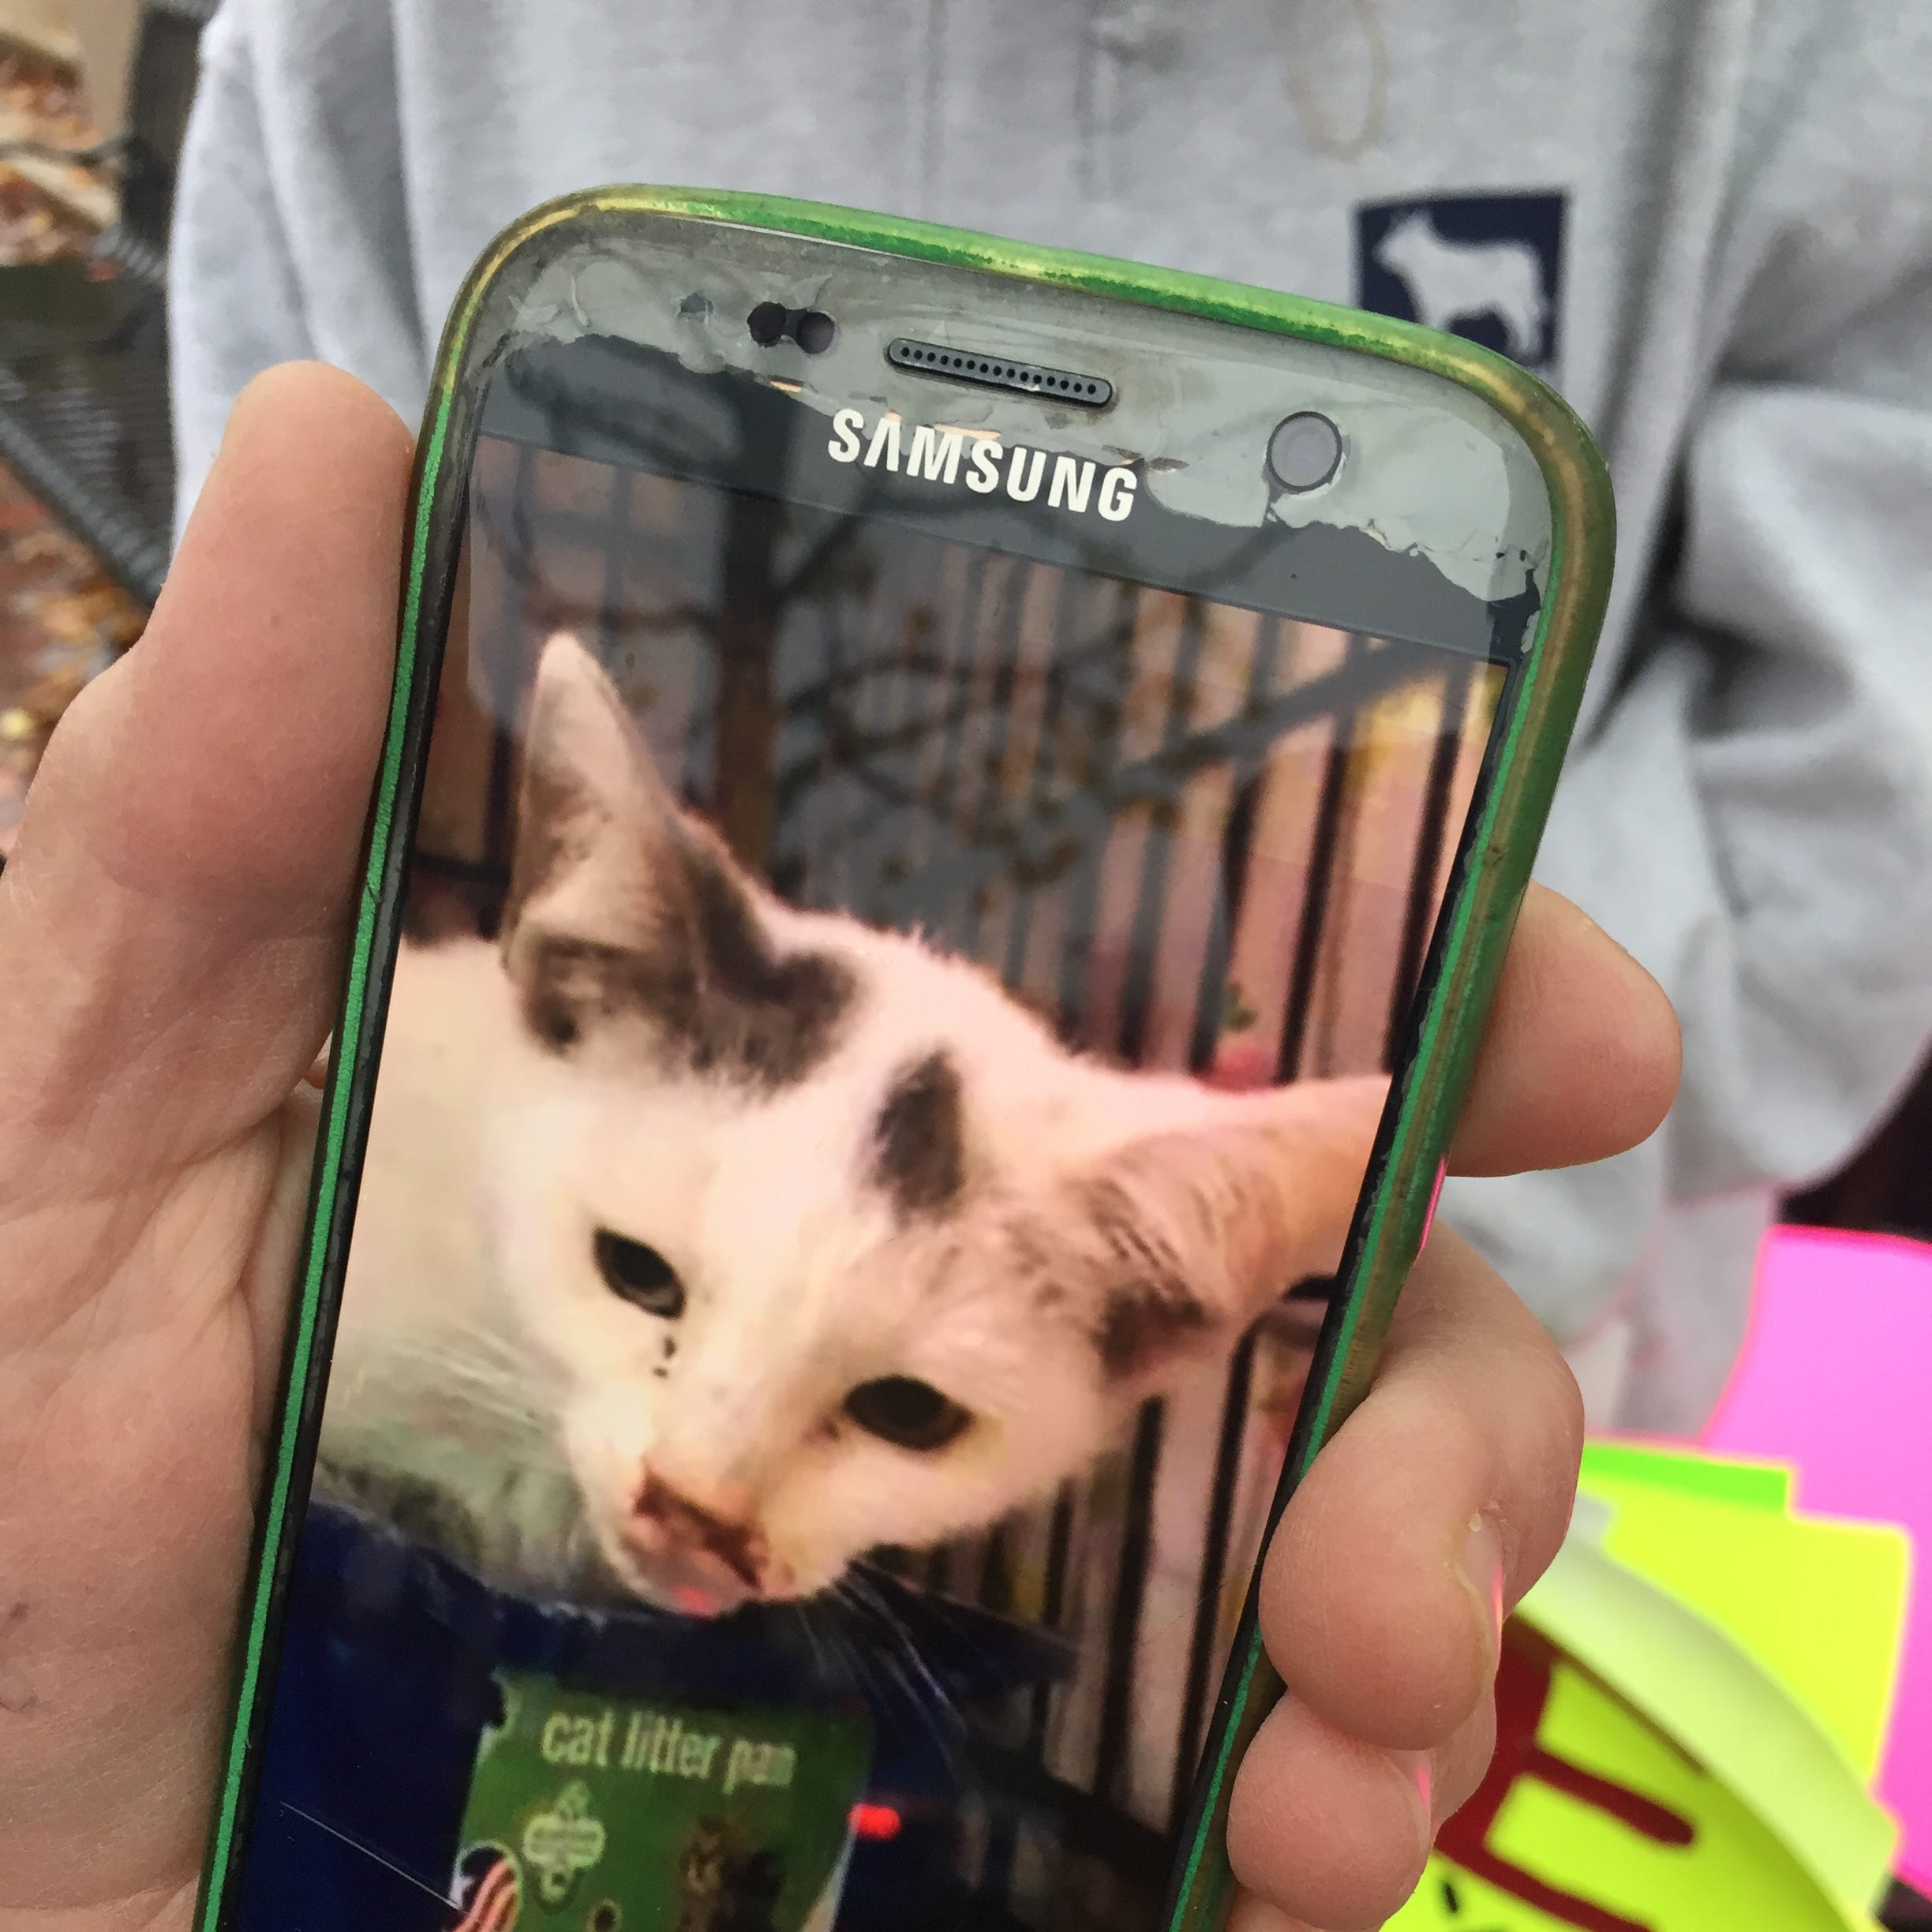 An animal rights advocate rallying in New City on Nov. 6 shows a photo on her phone of a cat at Hi Tor.